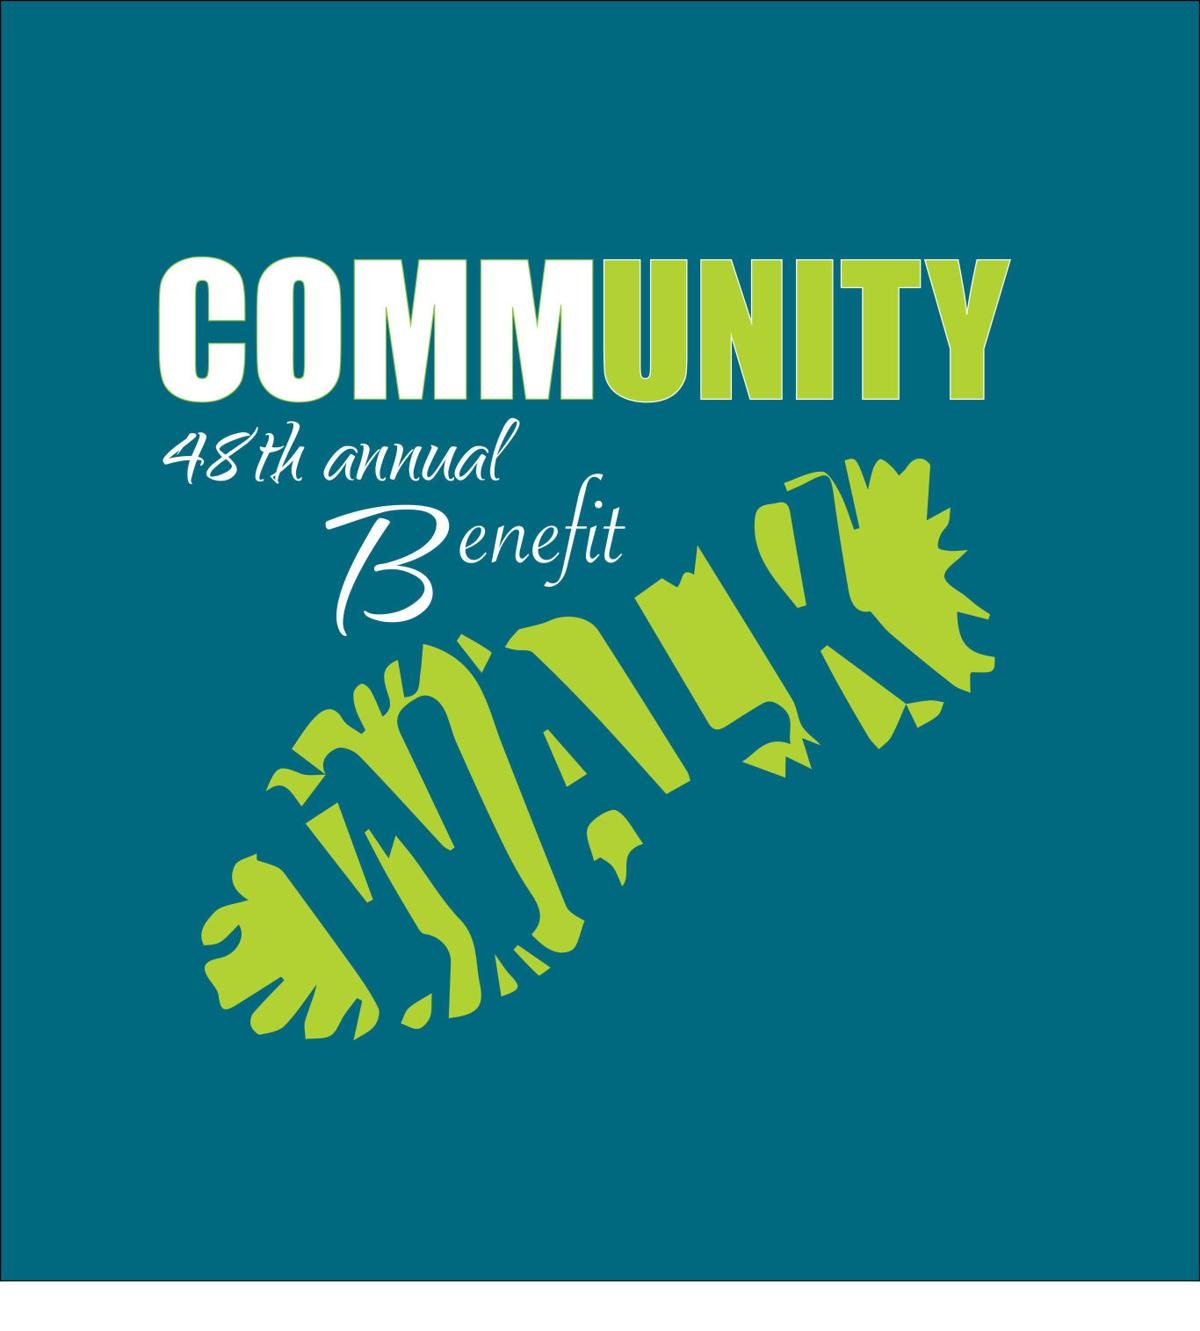 One Vision Walk logo